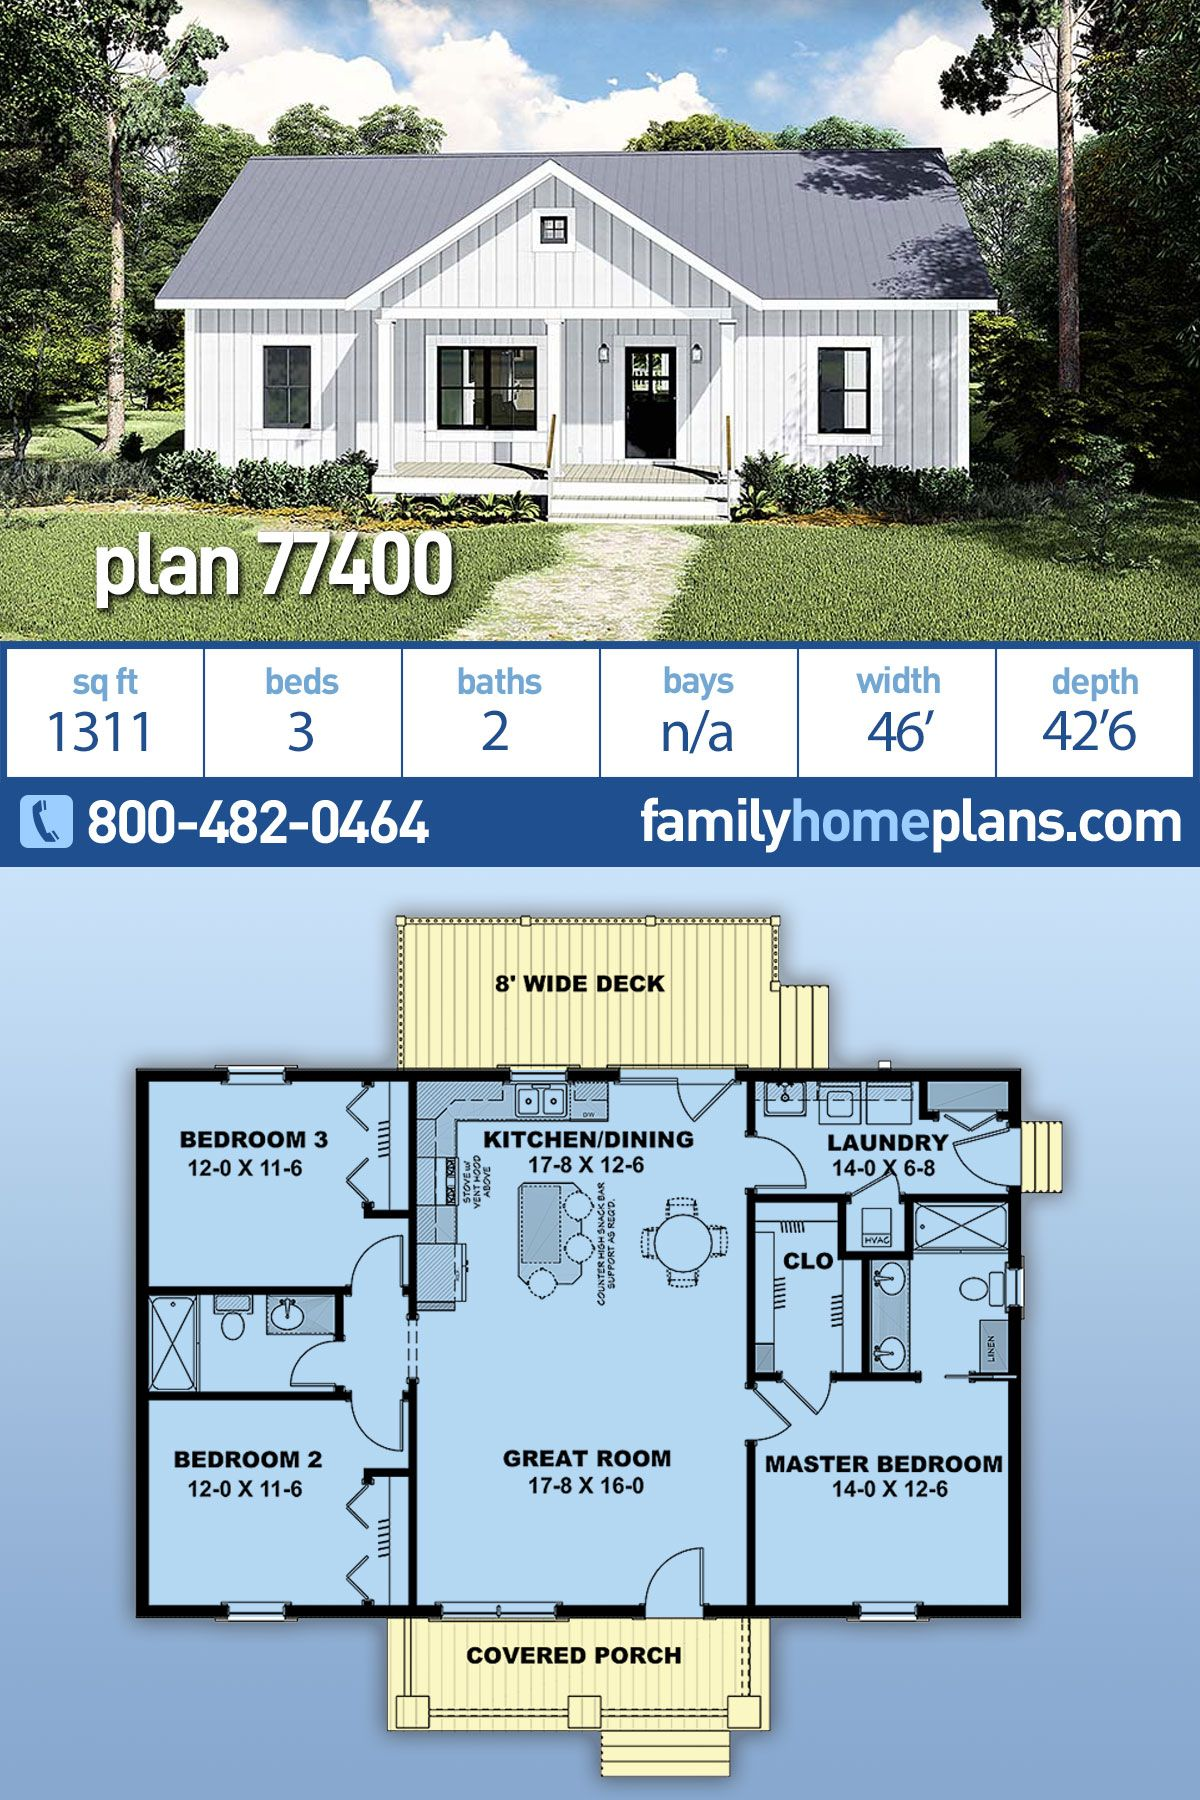 Country Ranch Home Plan 77400 Is 1311 Sq Ft 3 Bedrooms 2 Bathrooms Offers Affordable Constru In 2020 Country Style House Plans Ranch House Plans Country House Plans